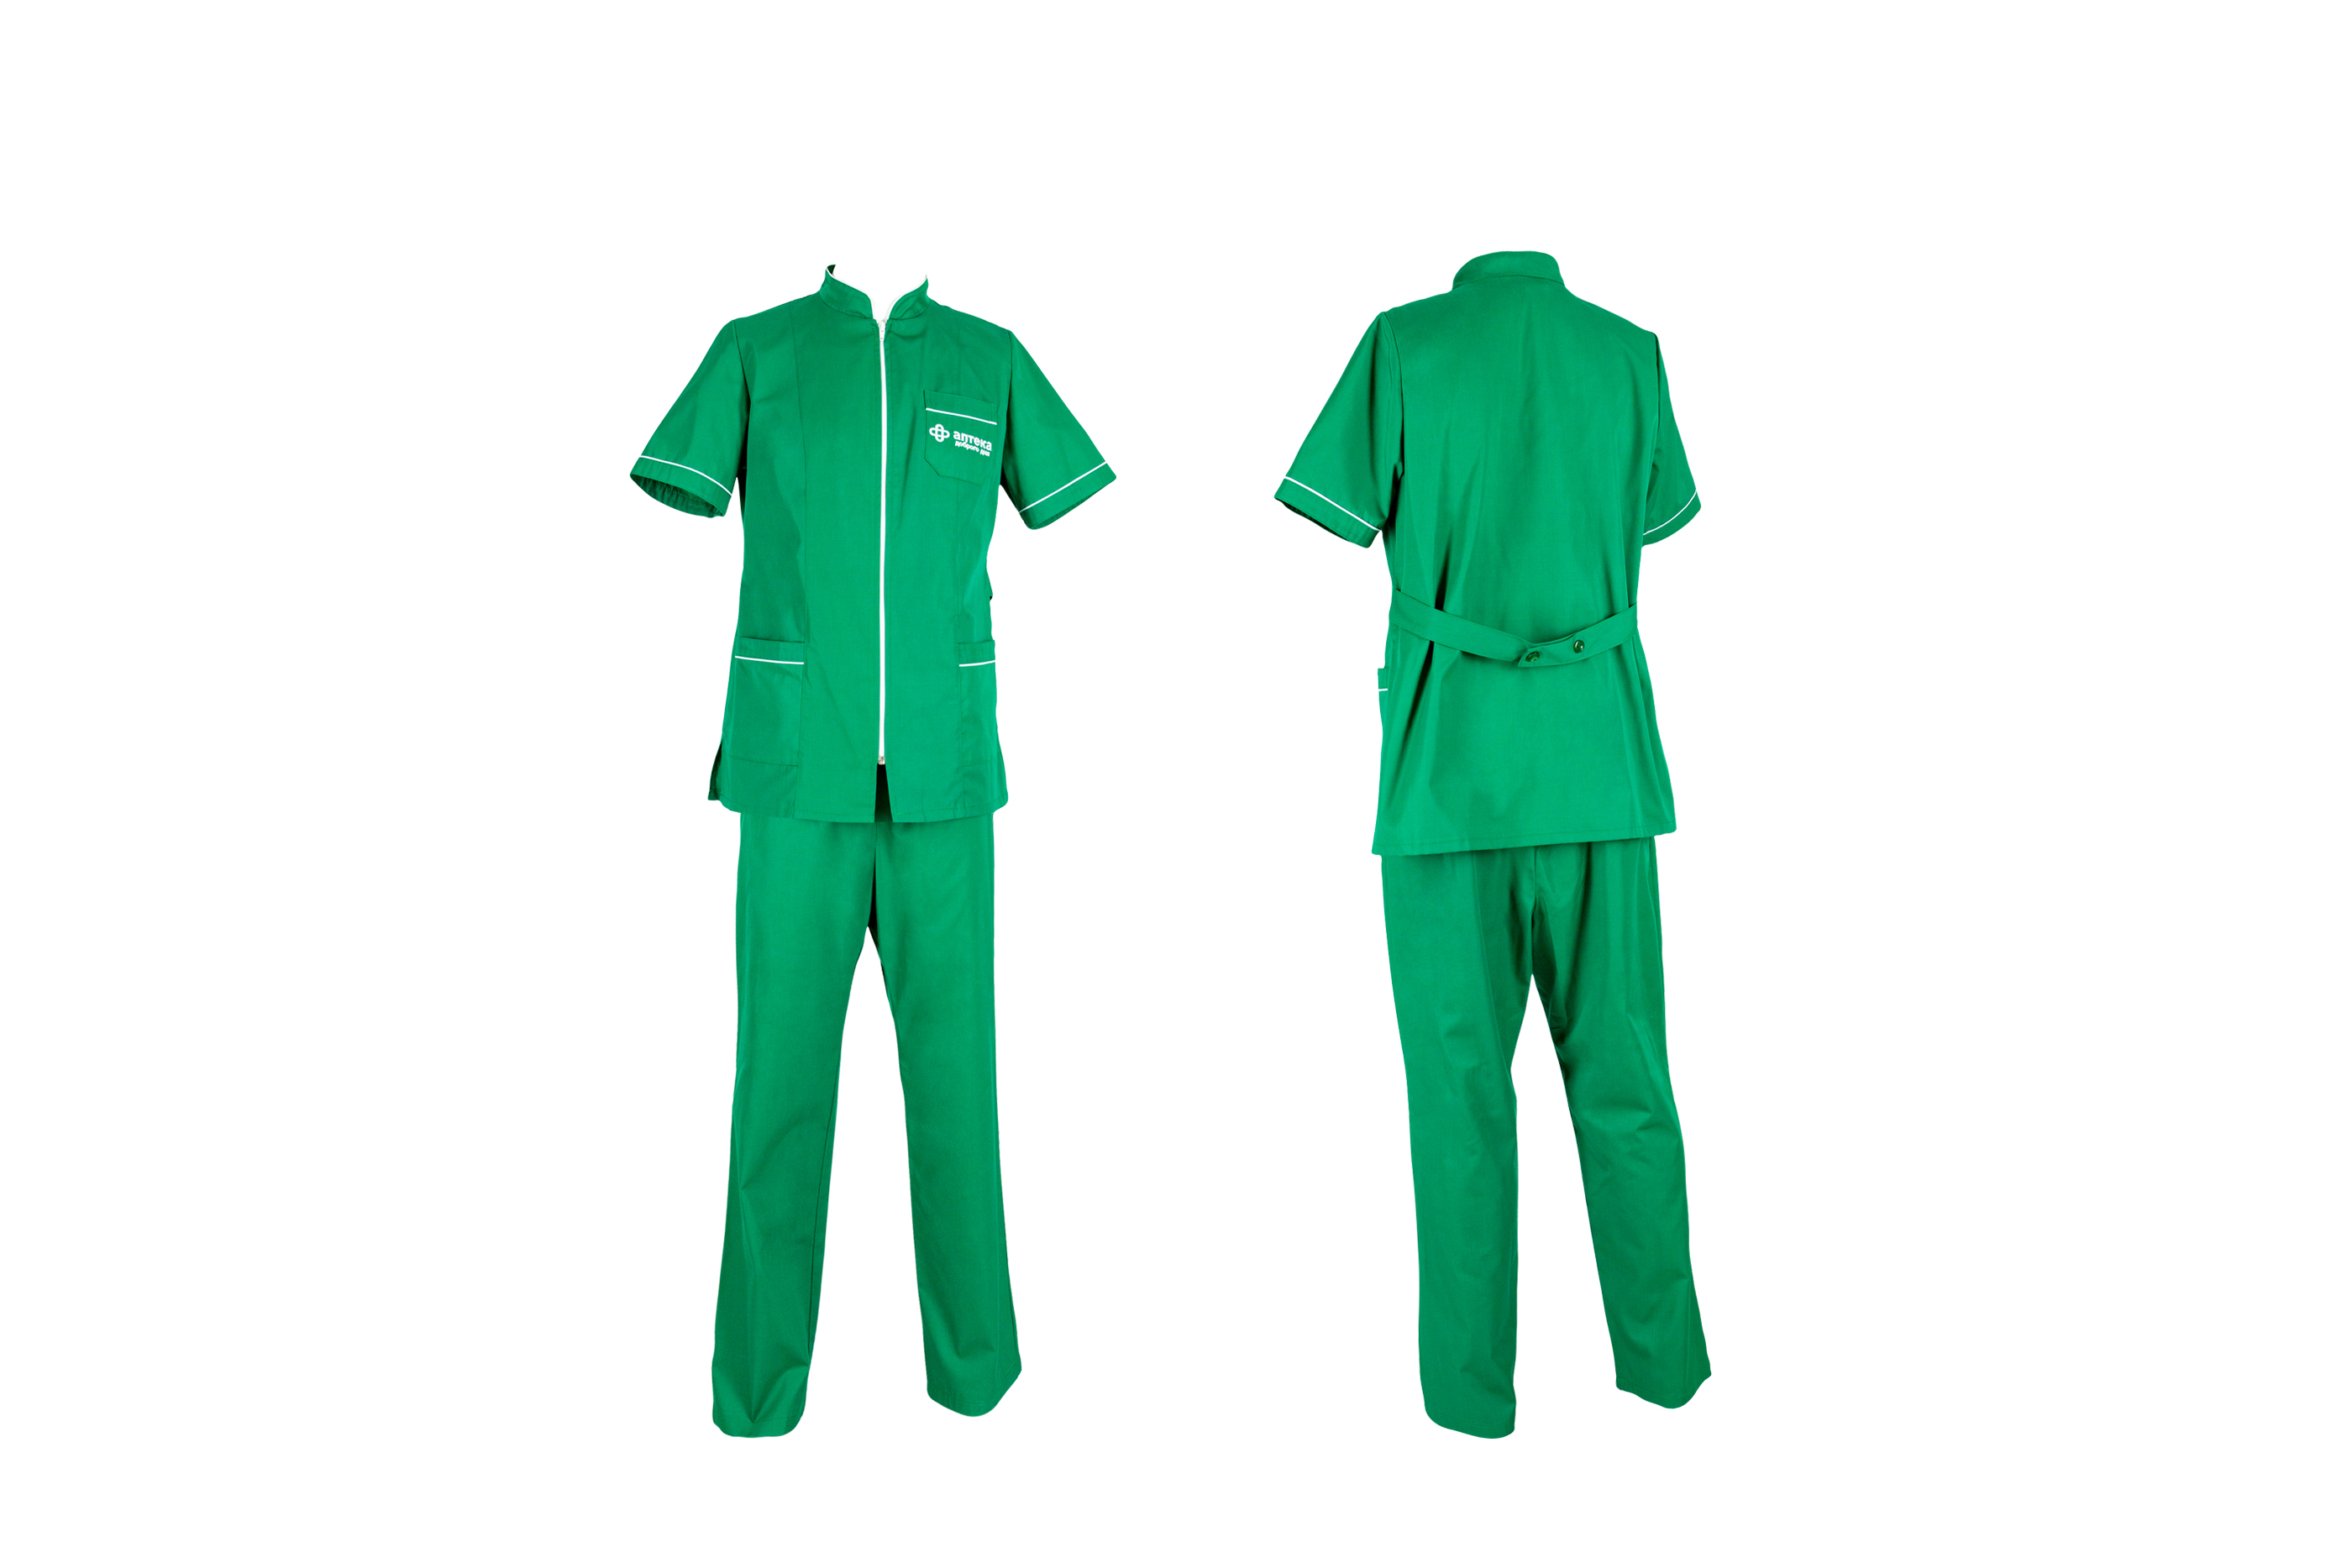 Medical uniforms | ppe | coveralls